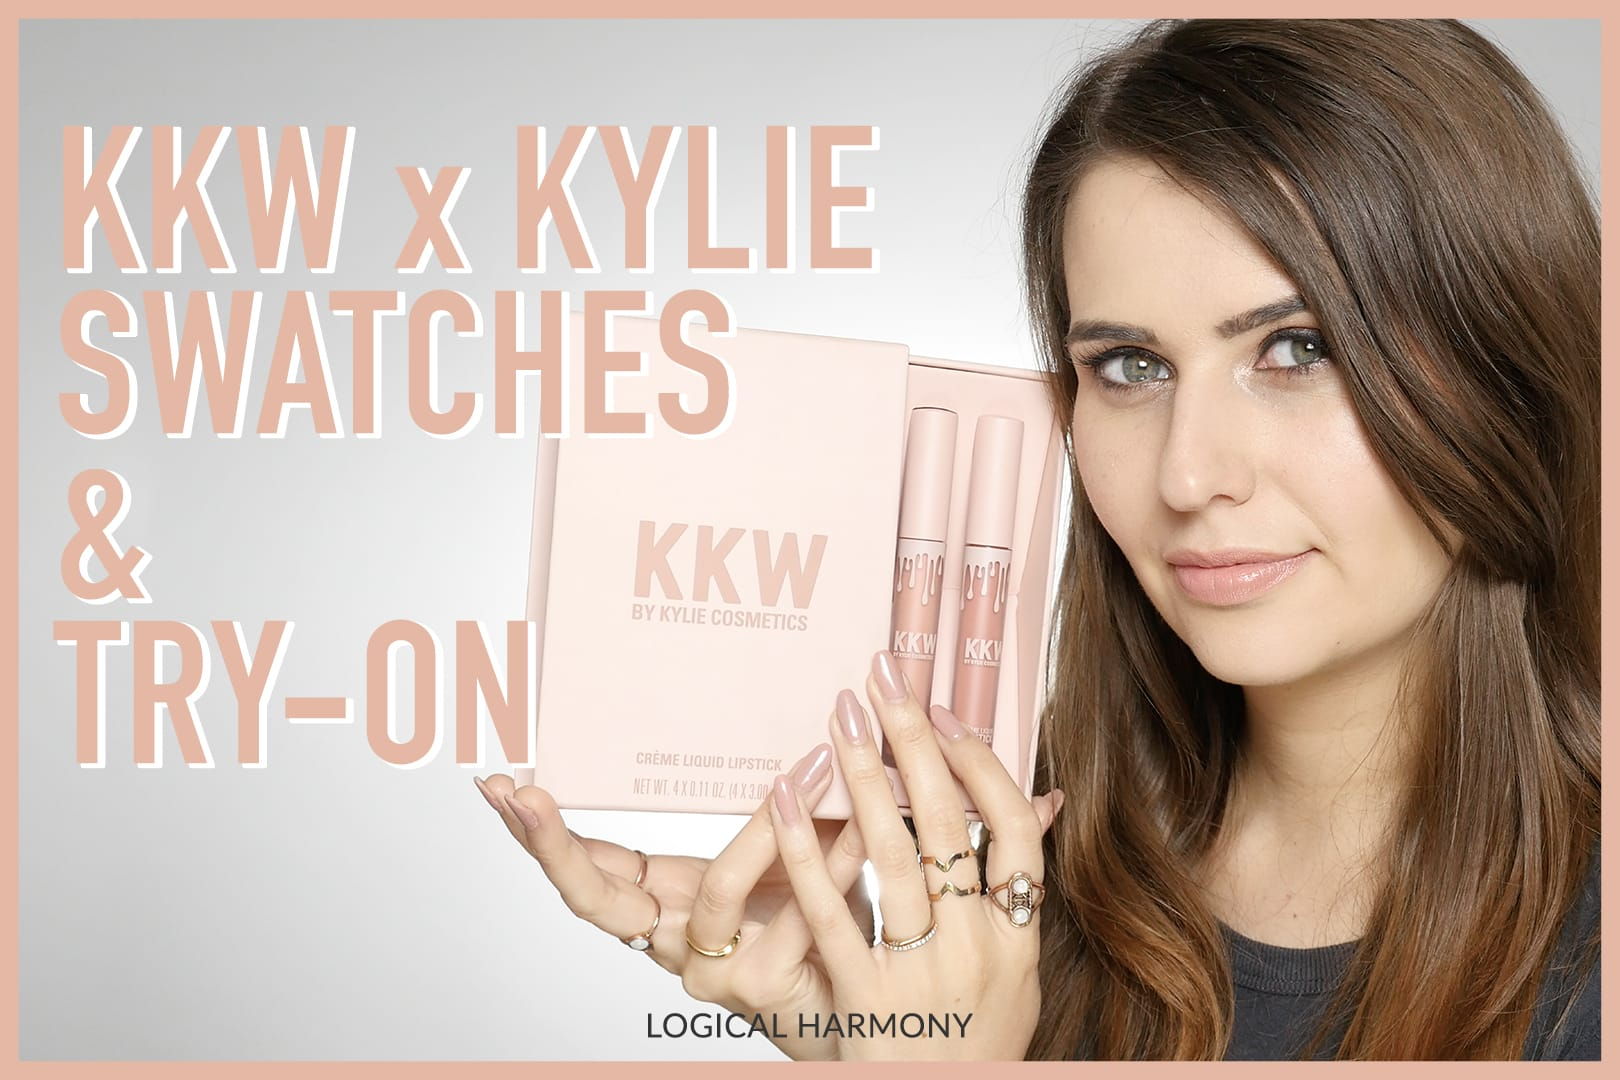 KKW x Kylie Cosmetics Swatches & Try On